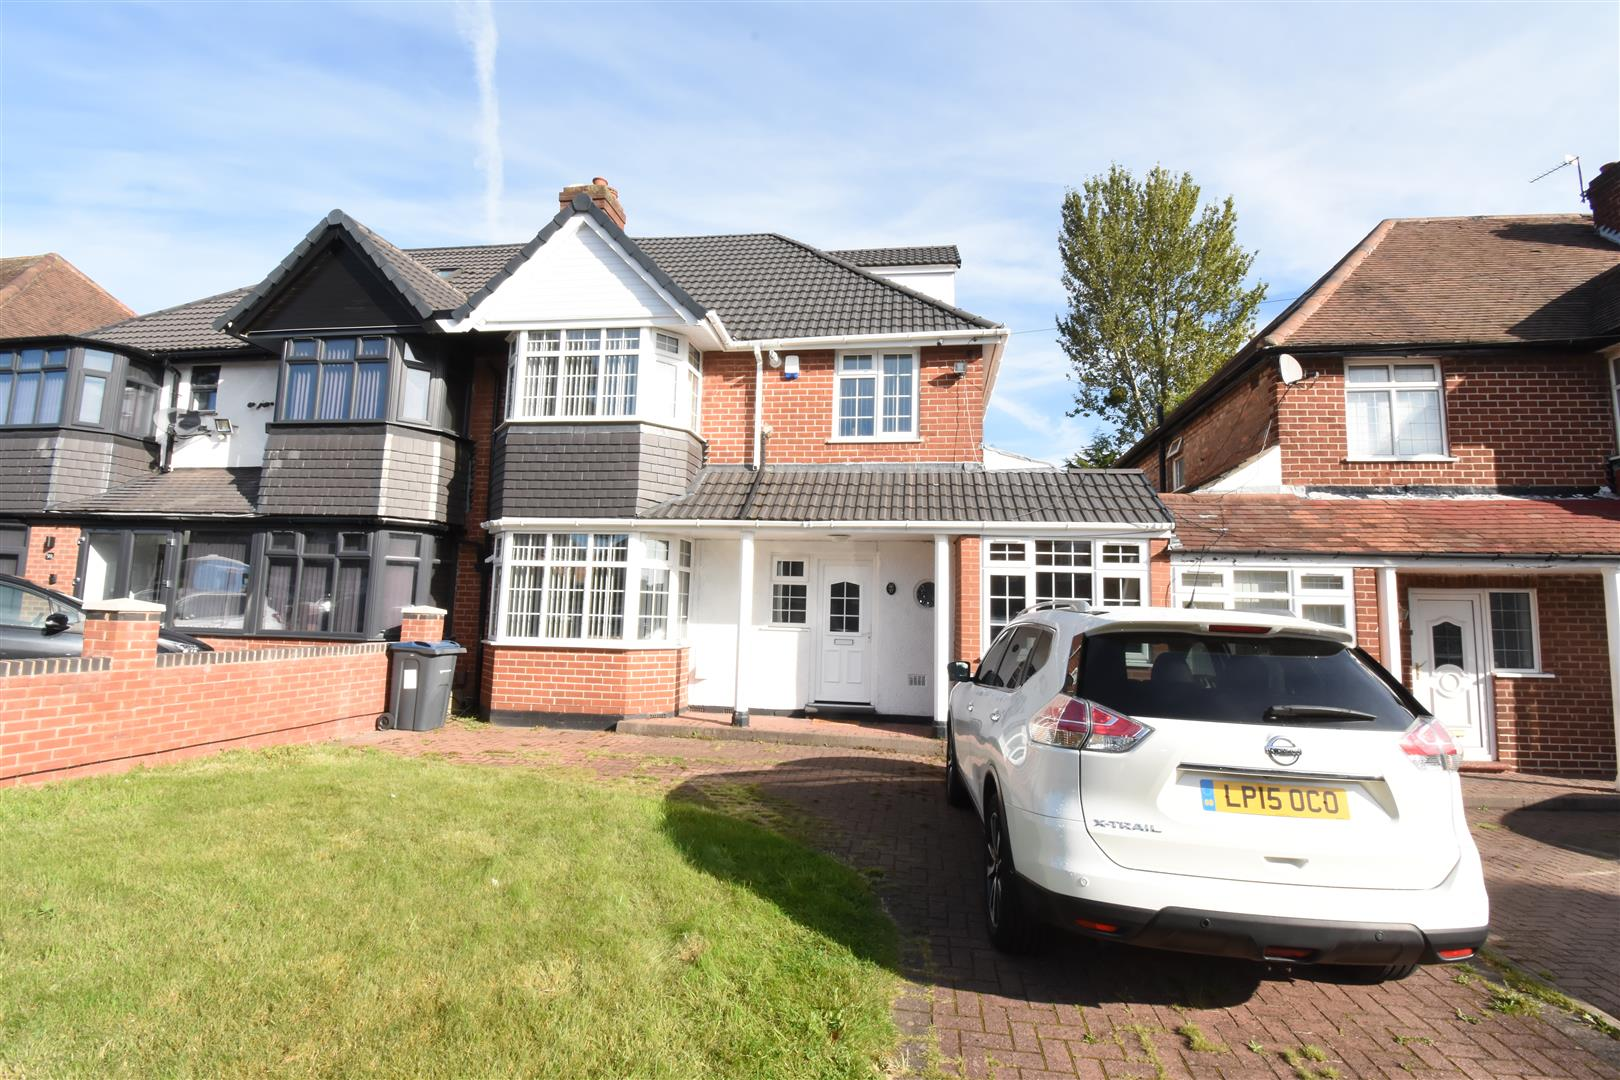 4 bed house for sale in Sandhurst Avenue, Hodge Hill, Birmingham, B36